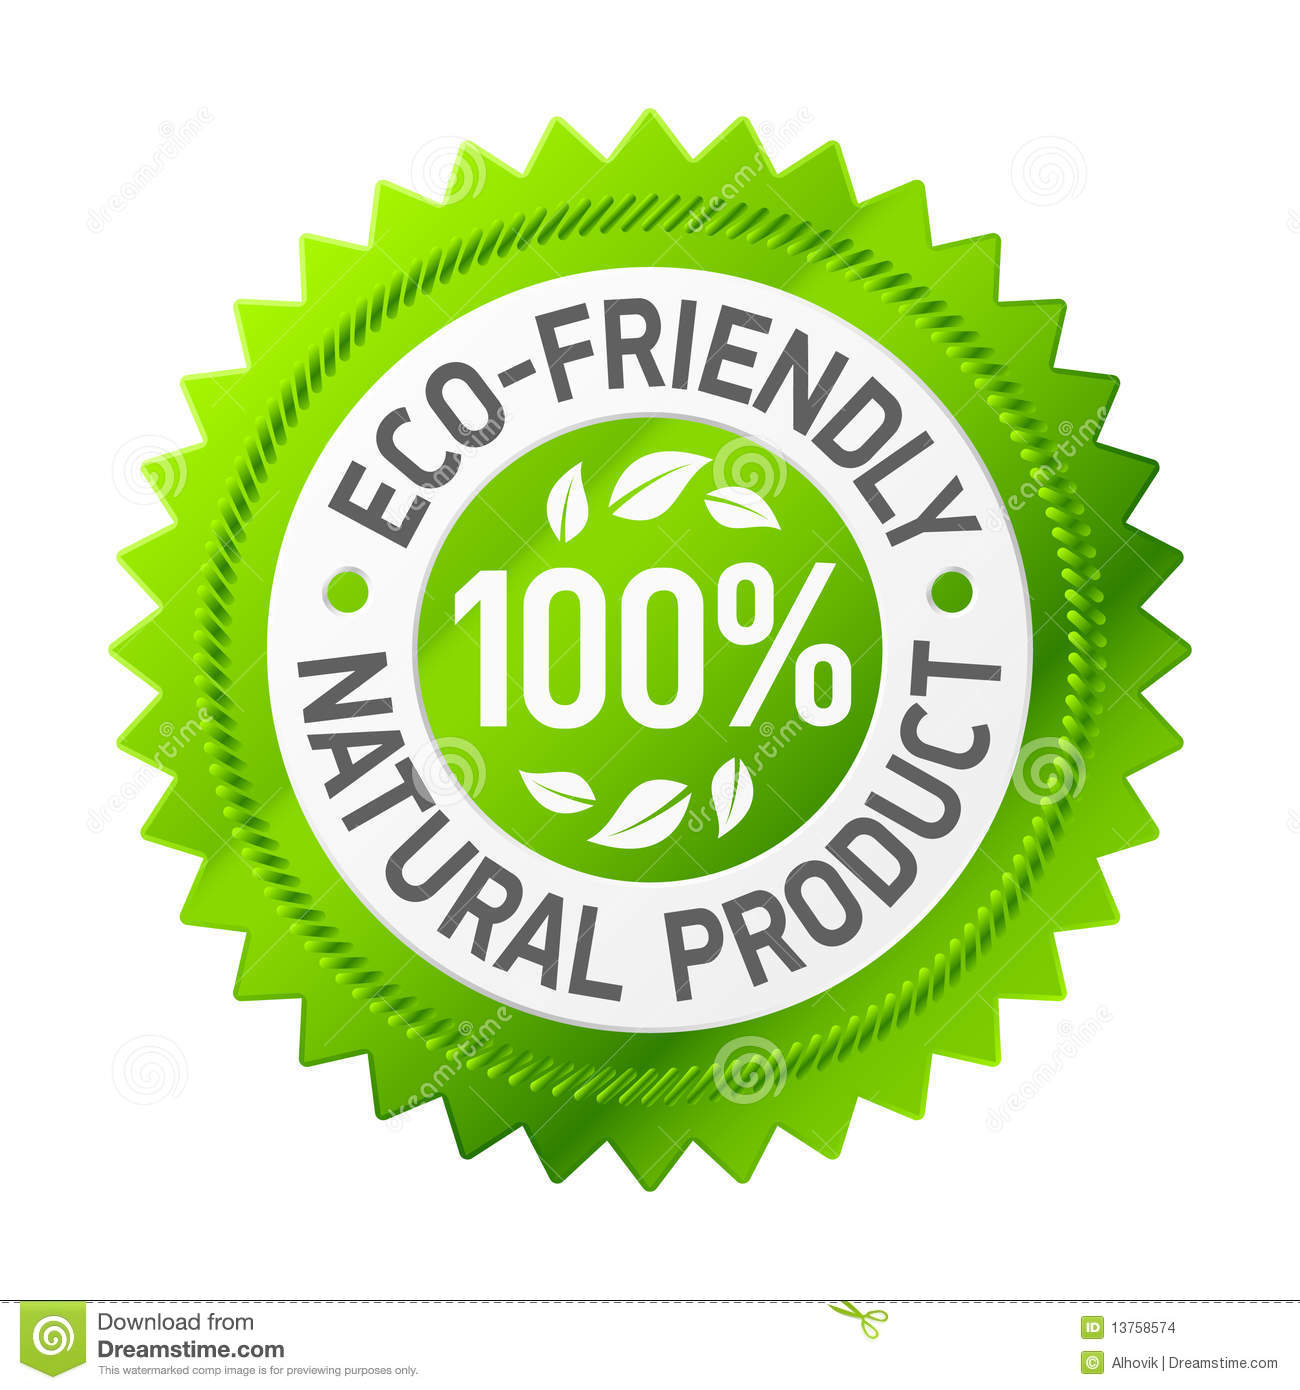 Sign of eco-friendly product